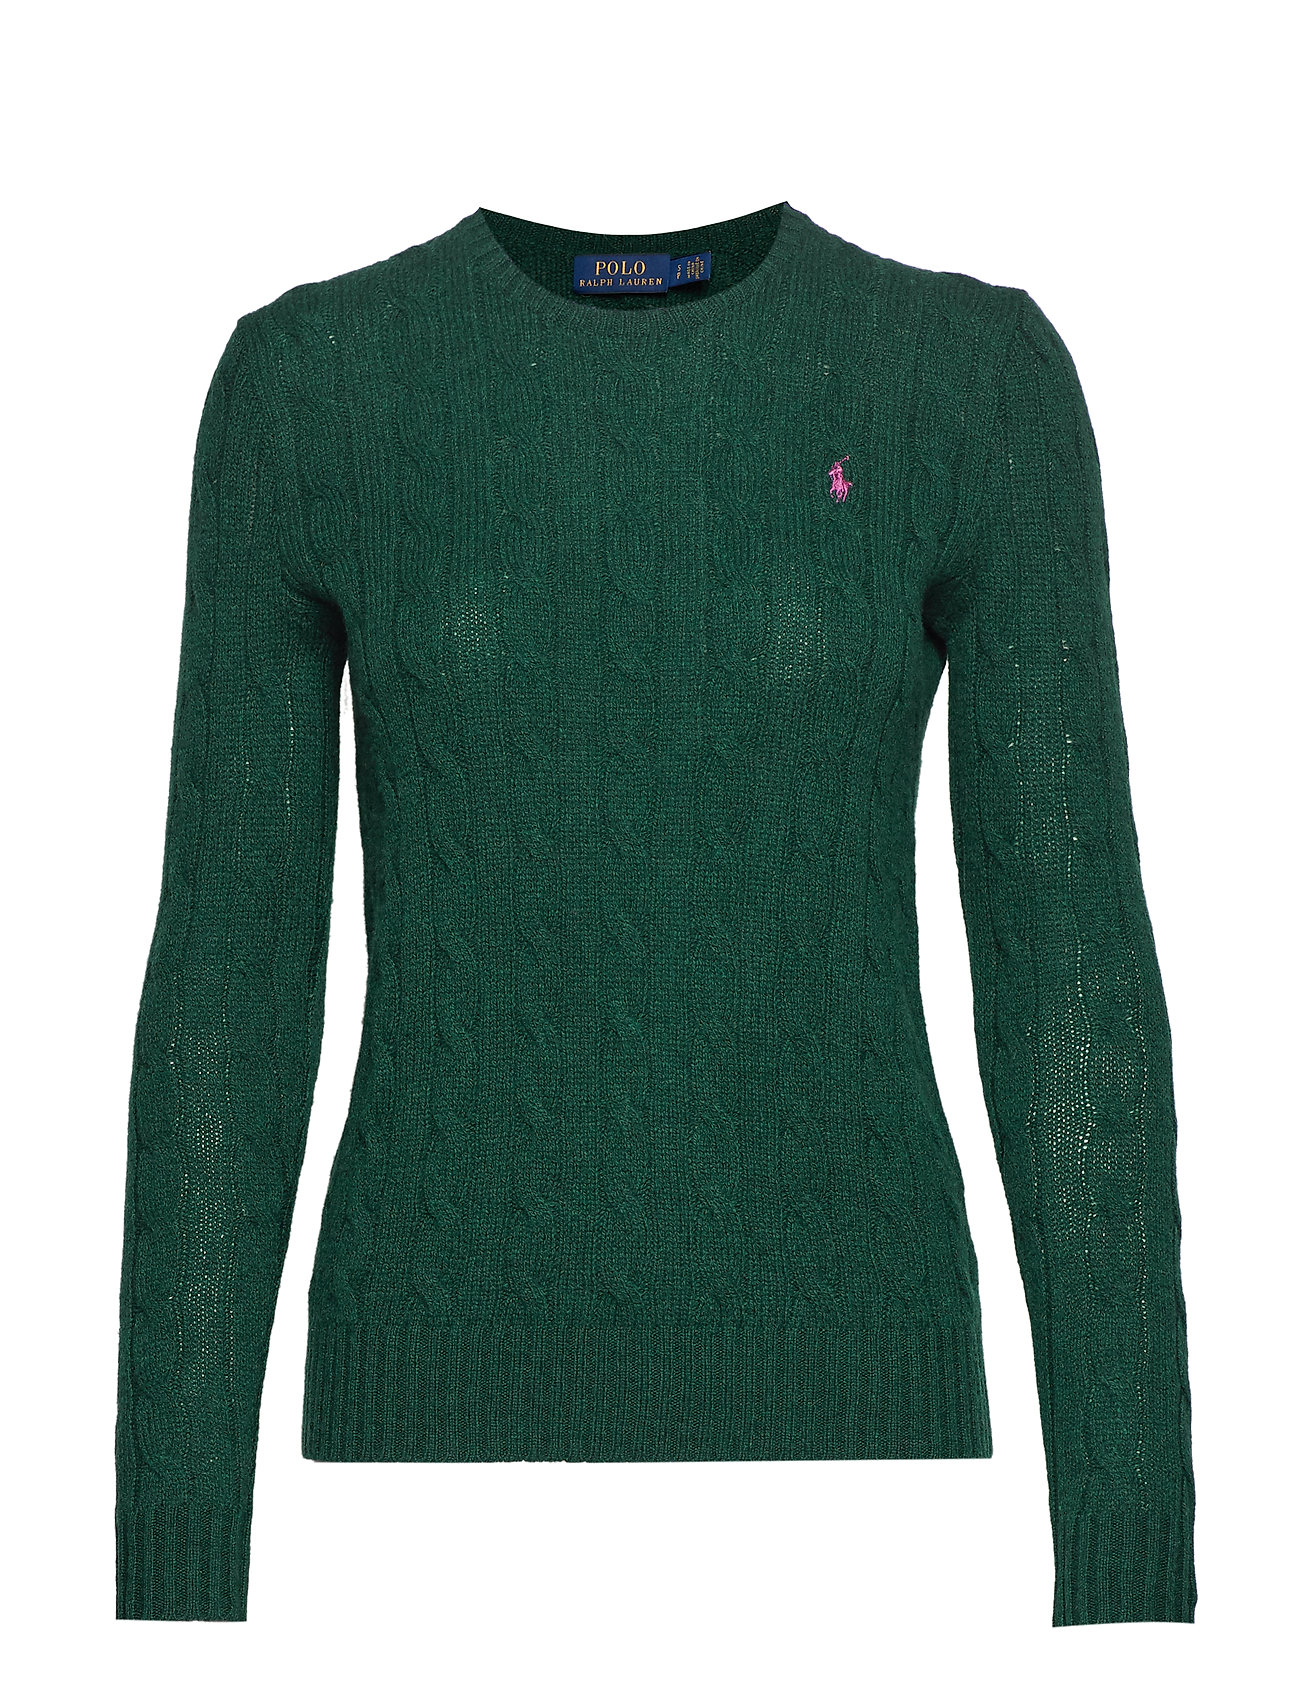 Polo Ralph Lauren Cable Wool-Cashmere Sweater - FOREST GREEN HEAT